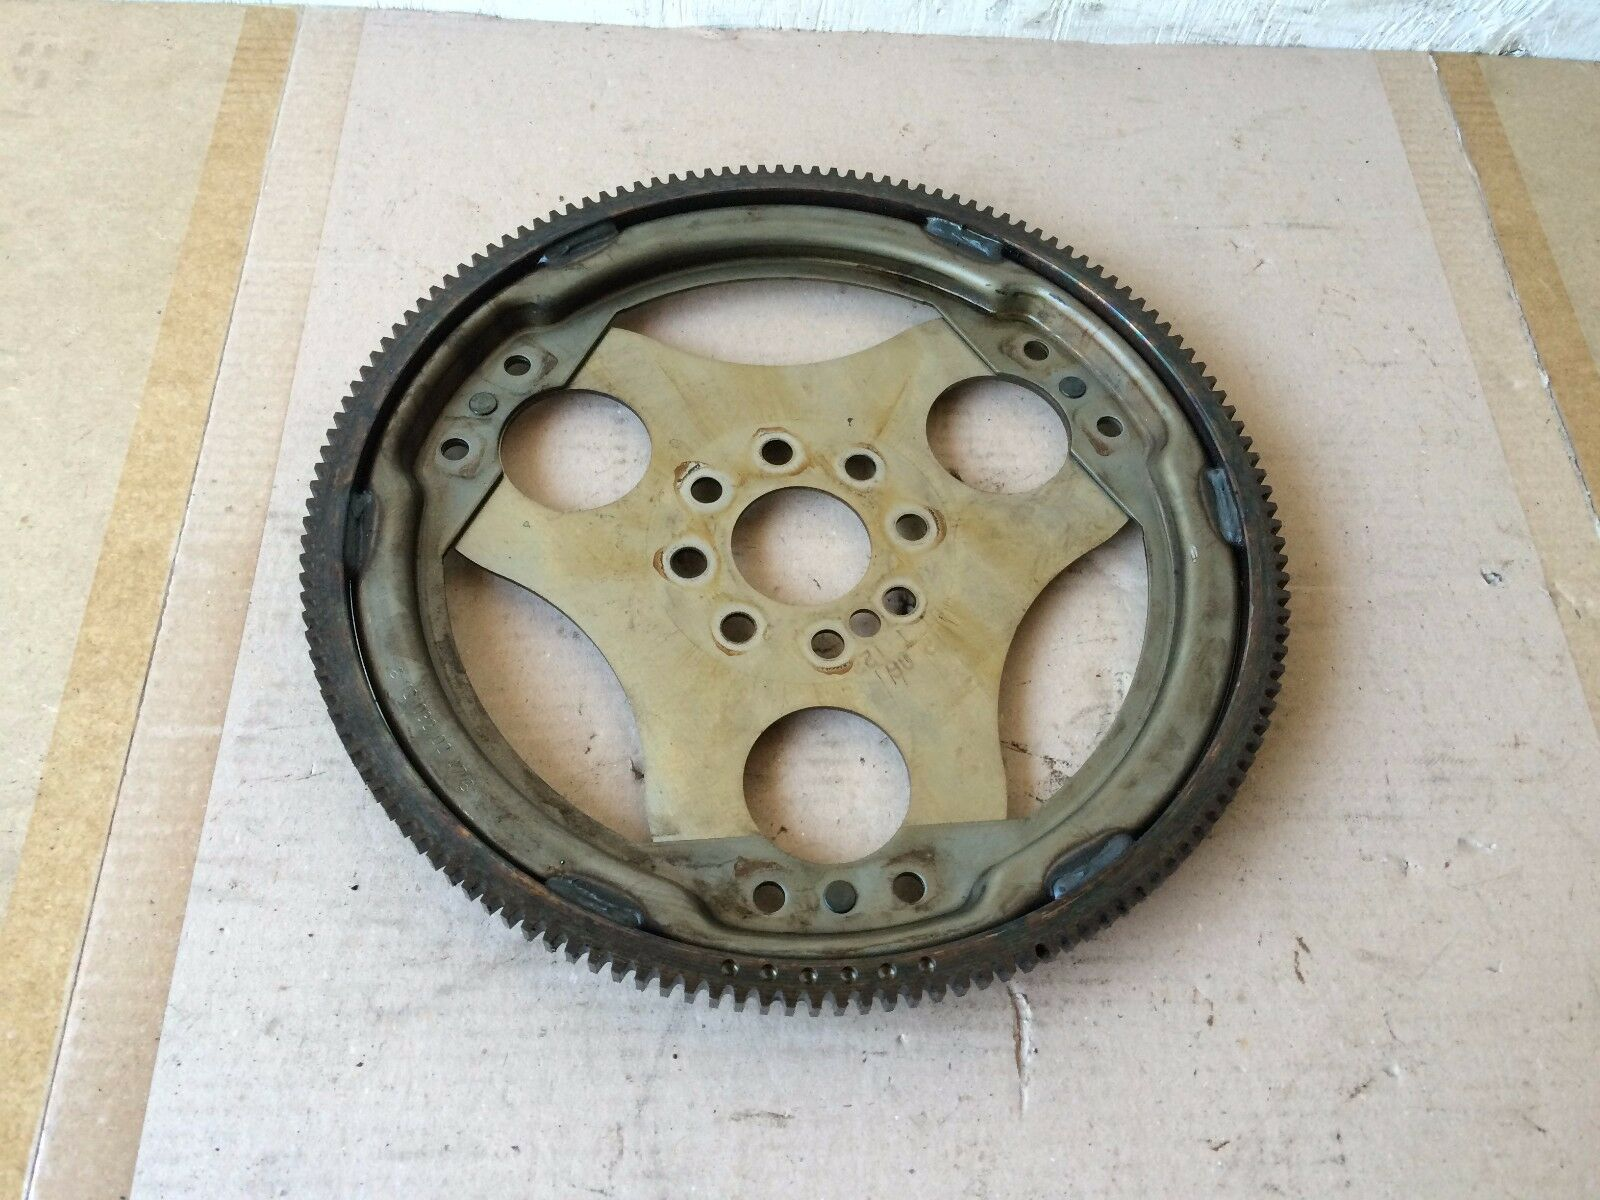 Mercedes Benz Oem S500 S430 W220 Engine Motor Flywheel Flex Plate 2005 Radio Wiring 1 Of 4only Available